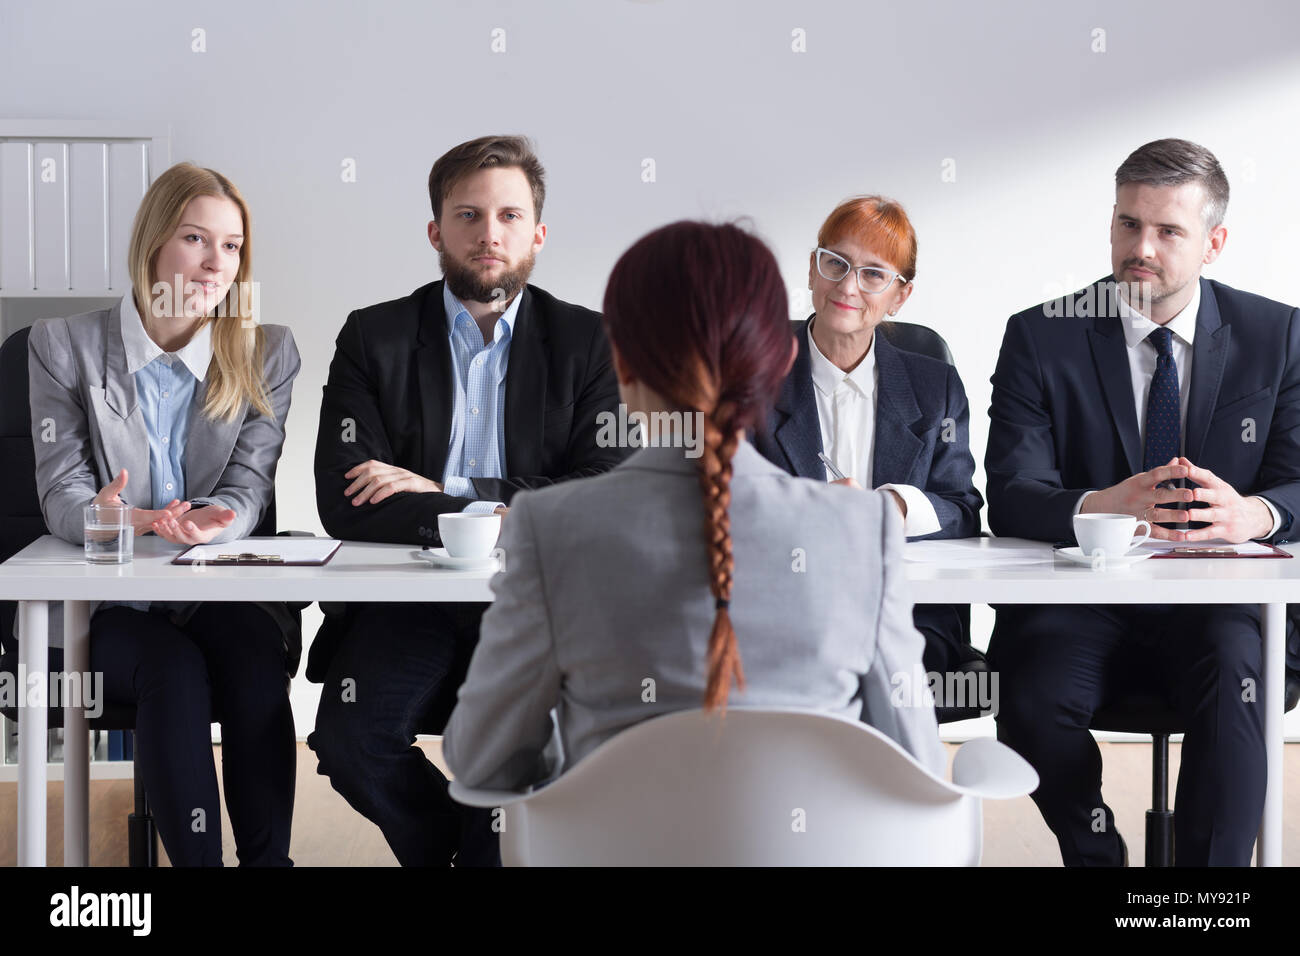 Femme lors d'entrevue d'emploi et quatre businesspeople sitting par table office Photo Stock